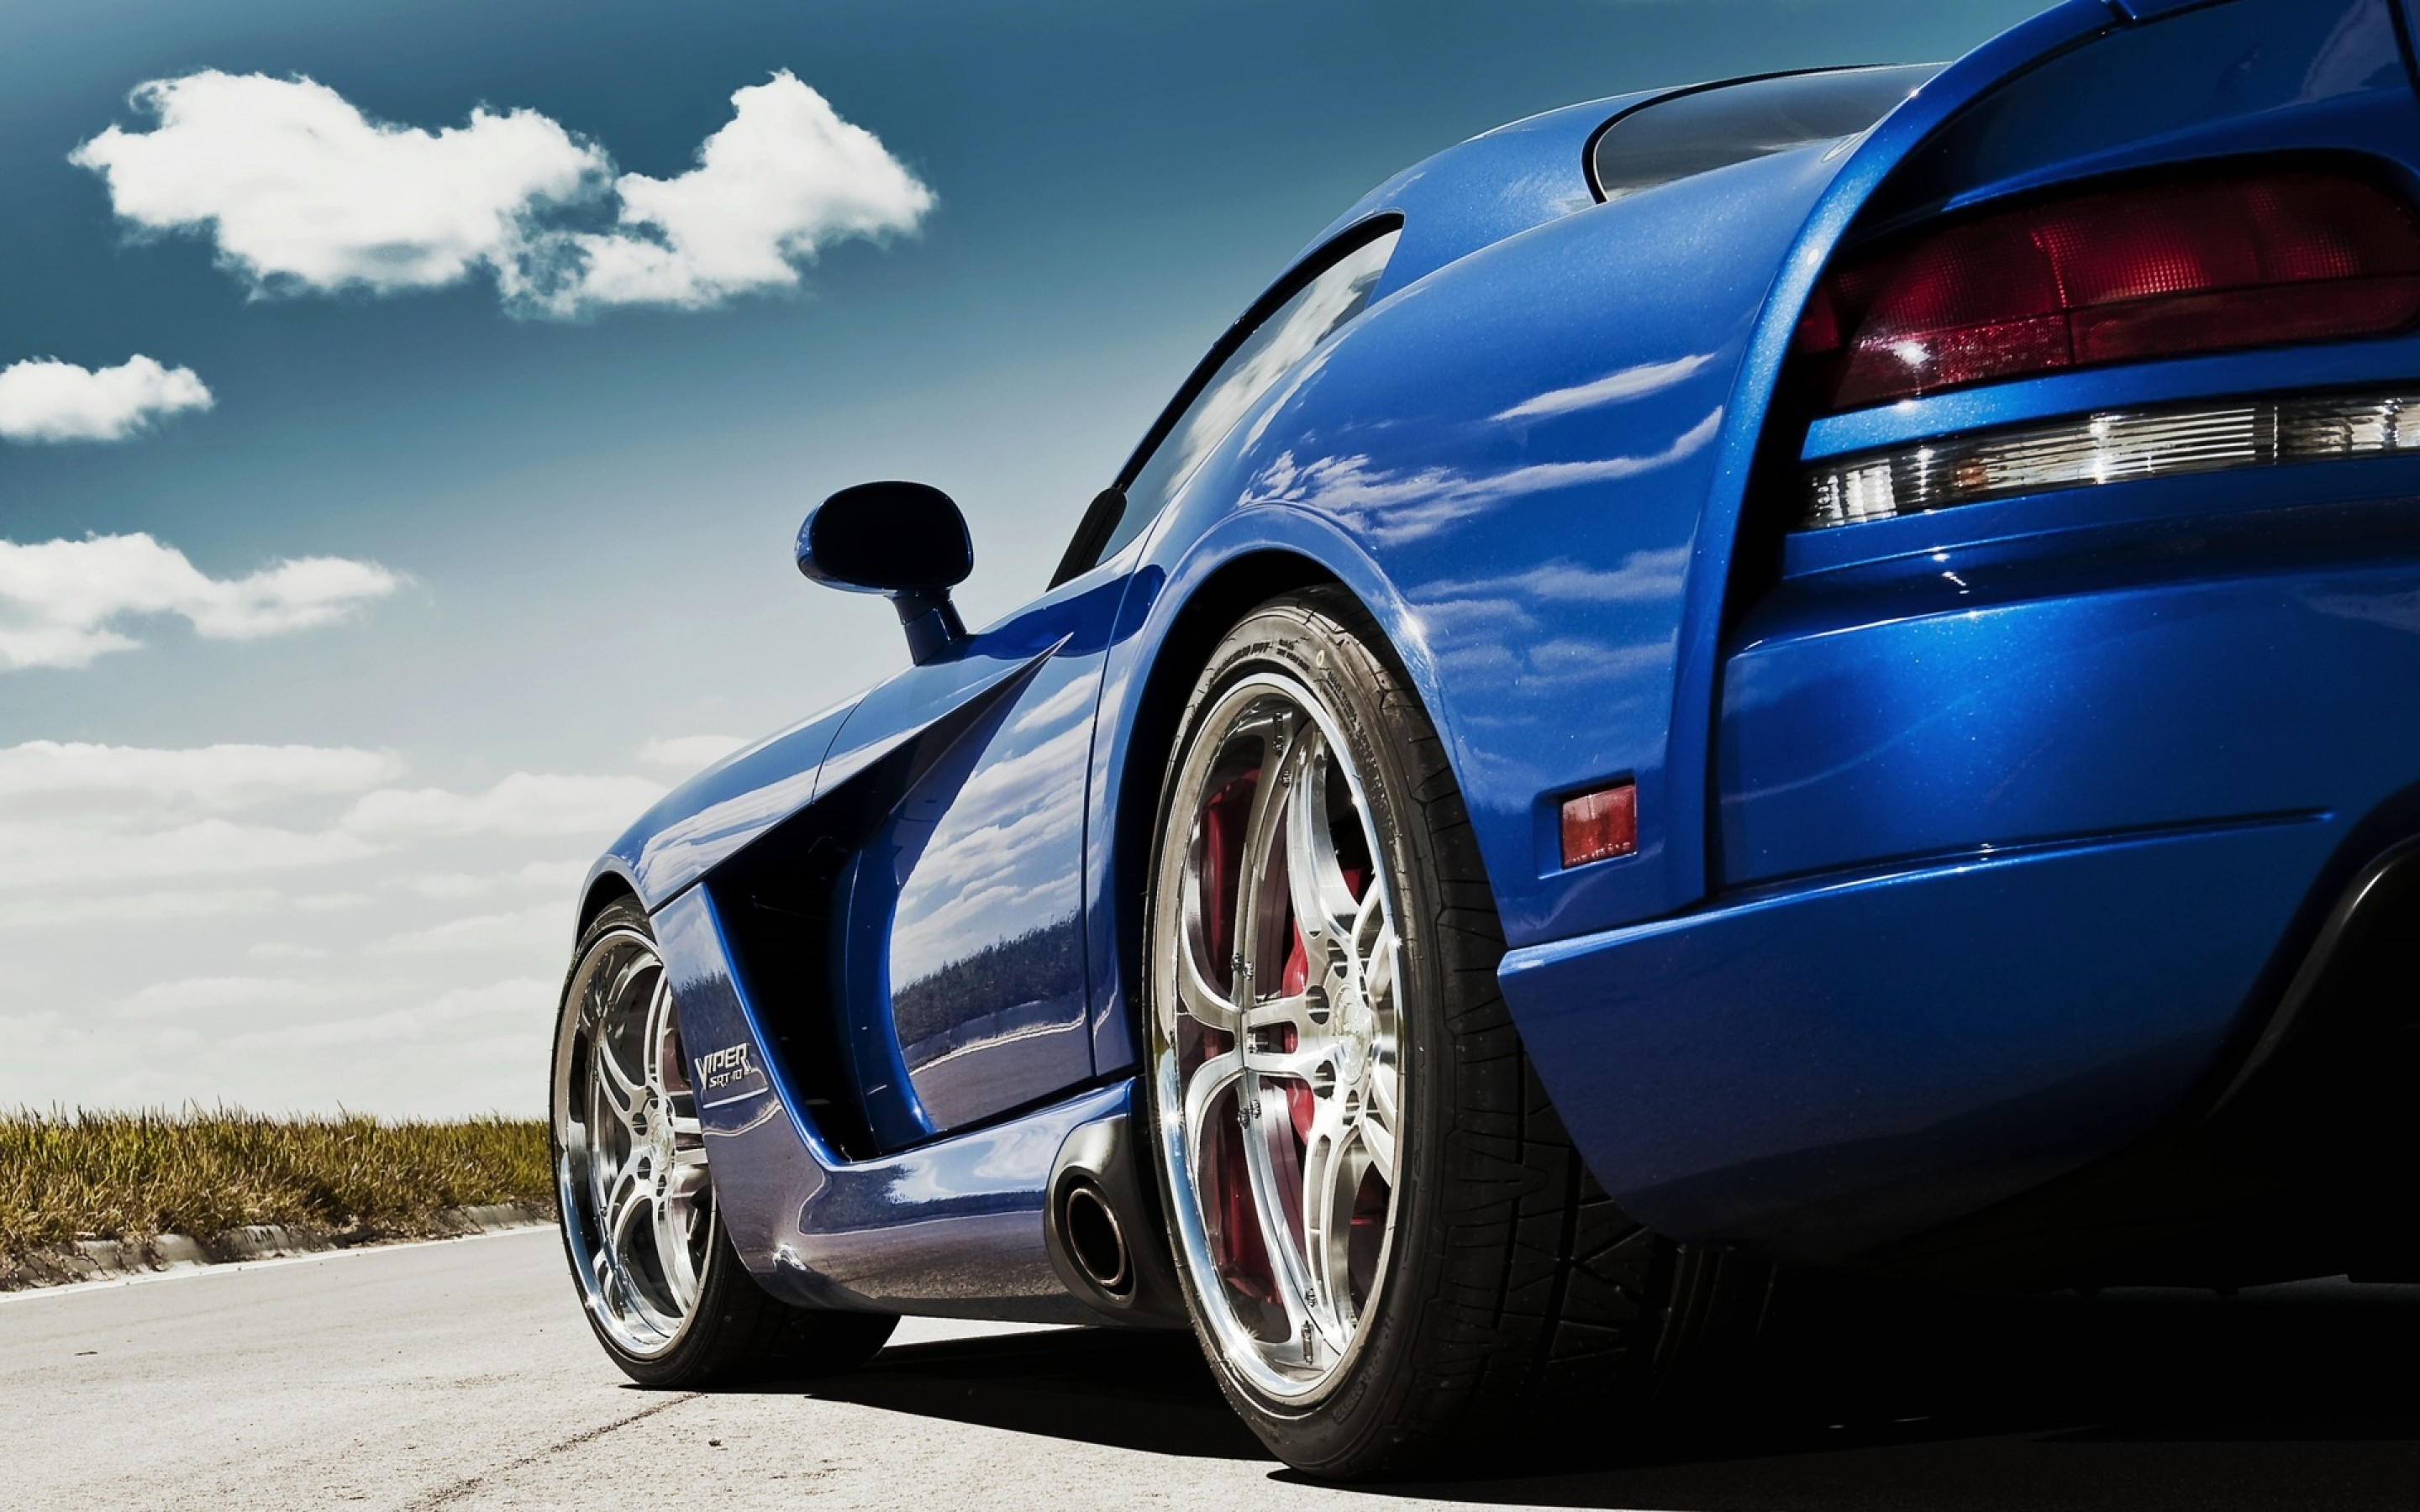 Dodge Viper Blue Car Wallpaper 7971 Frenziacom 2880x1800